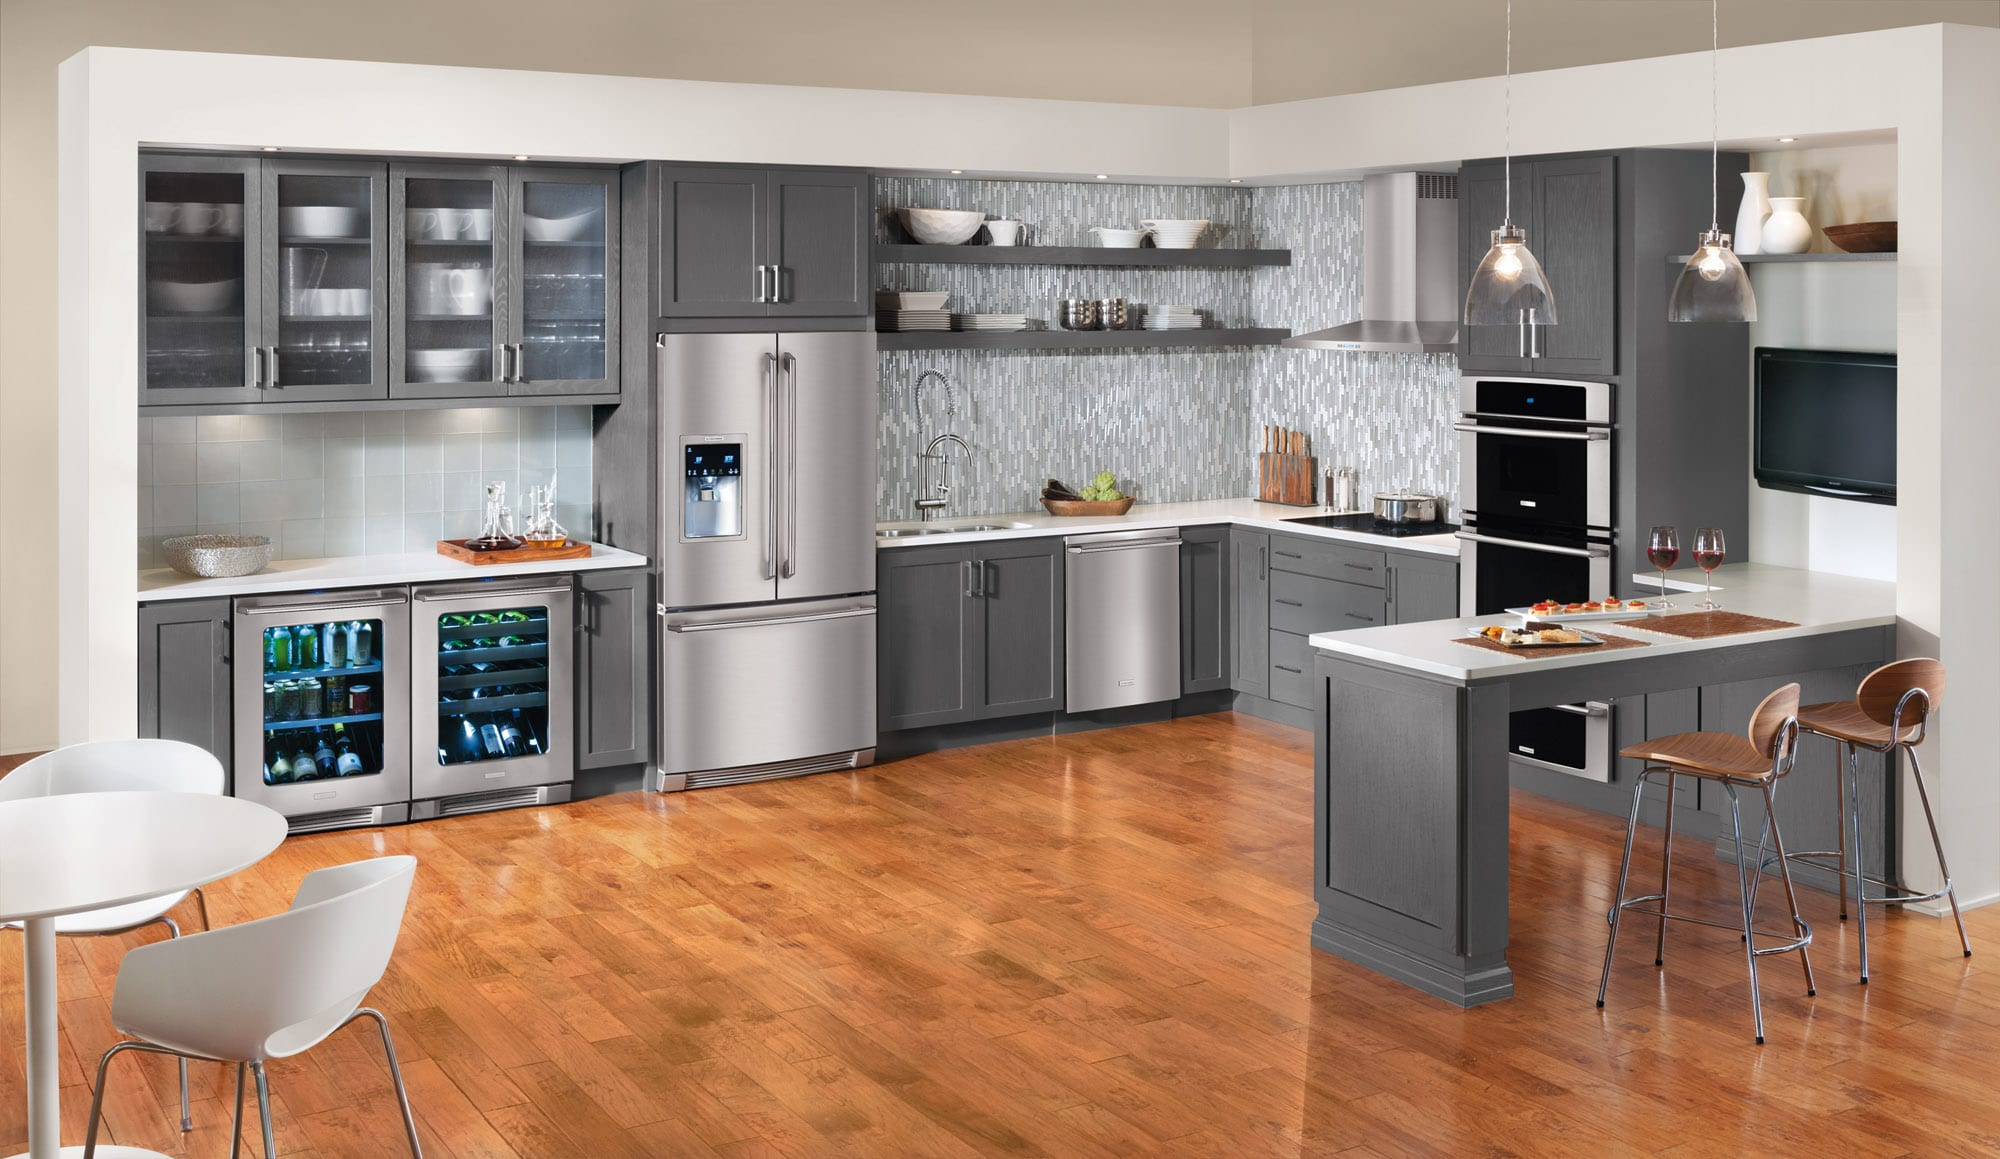 save money by ing appliances online thrifty traveler